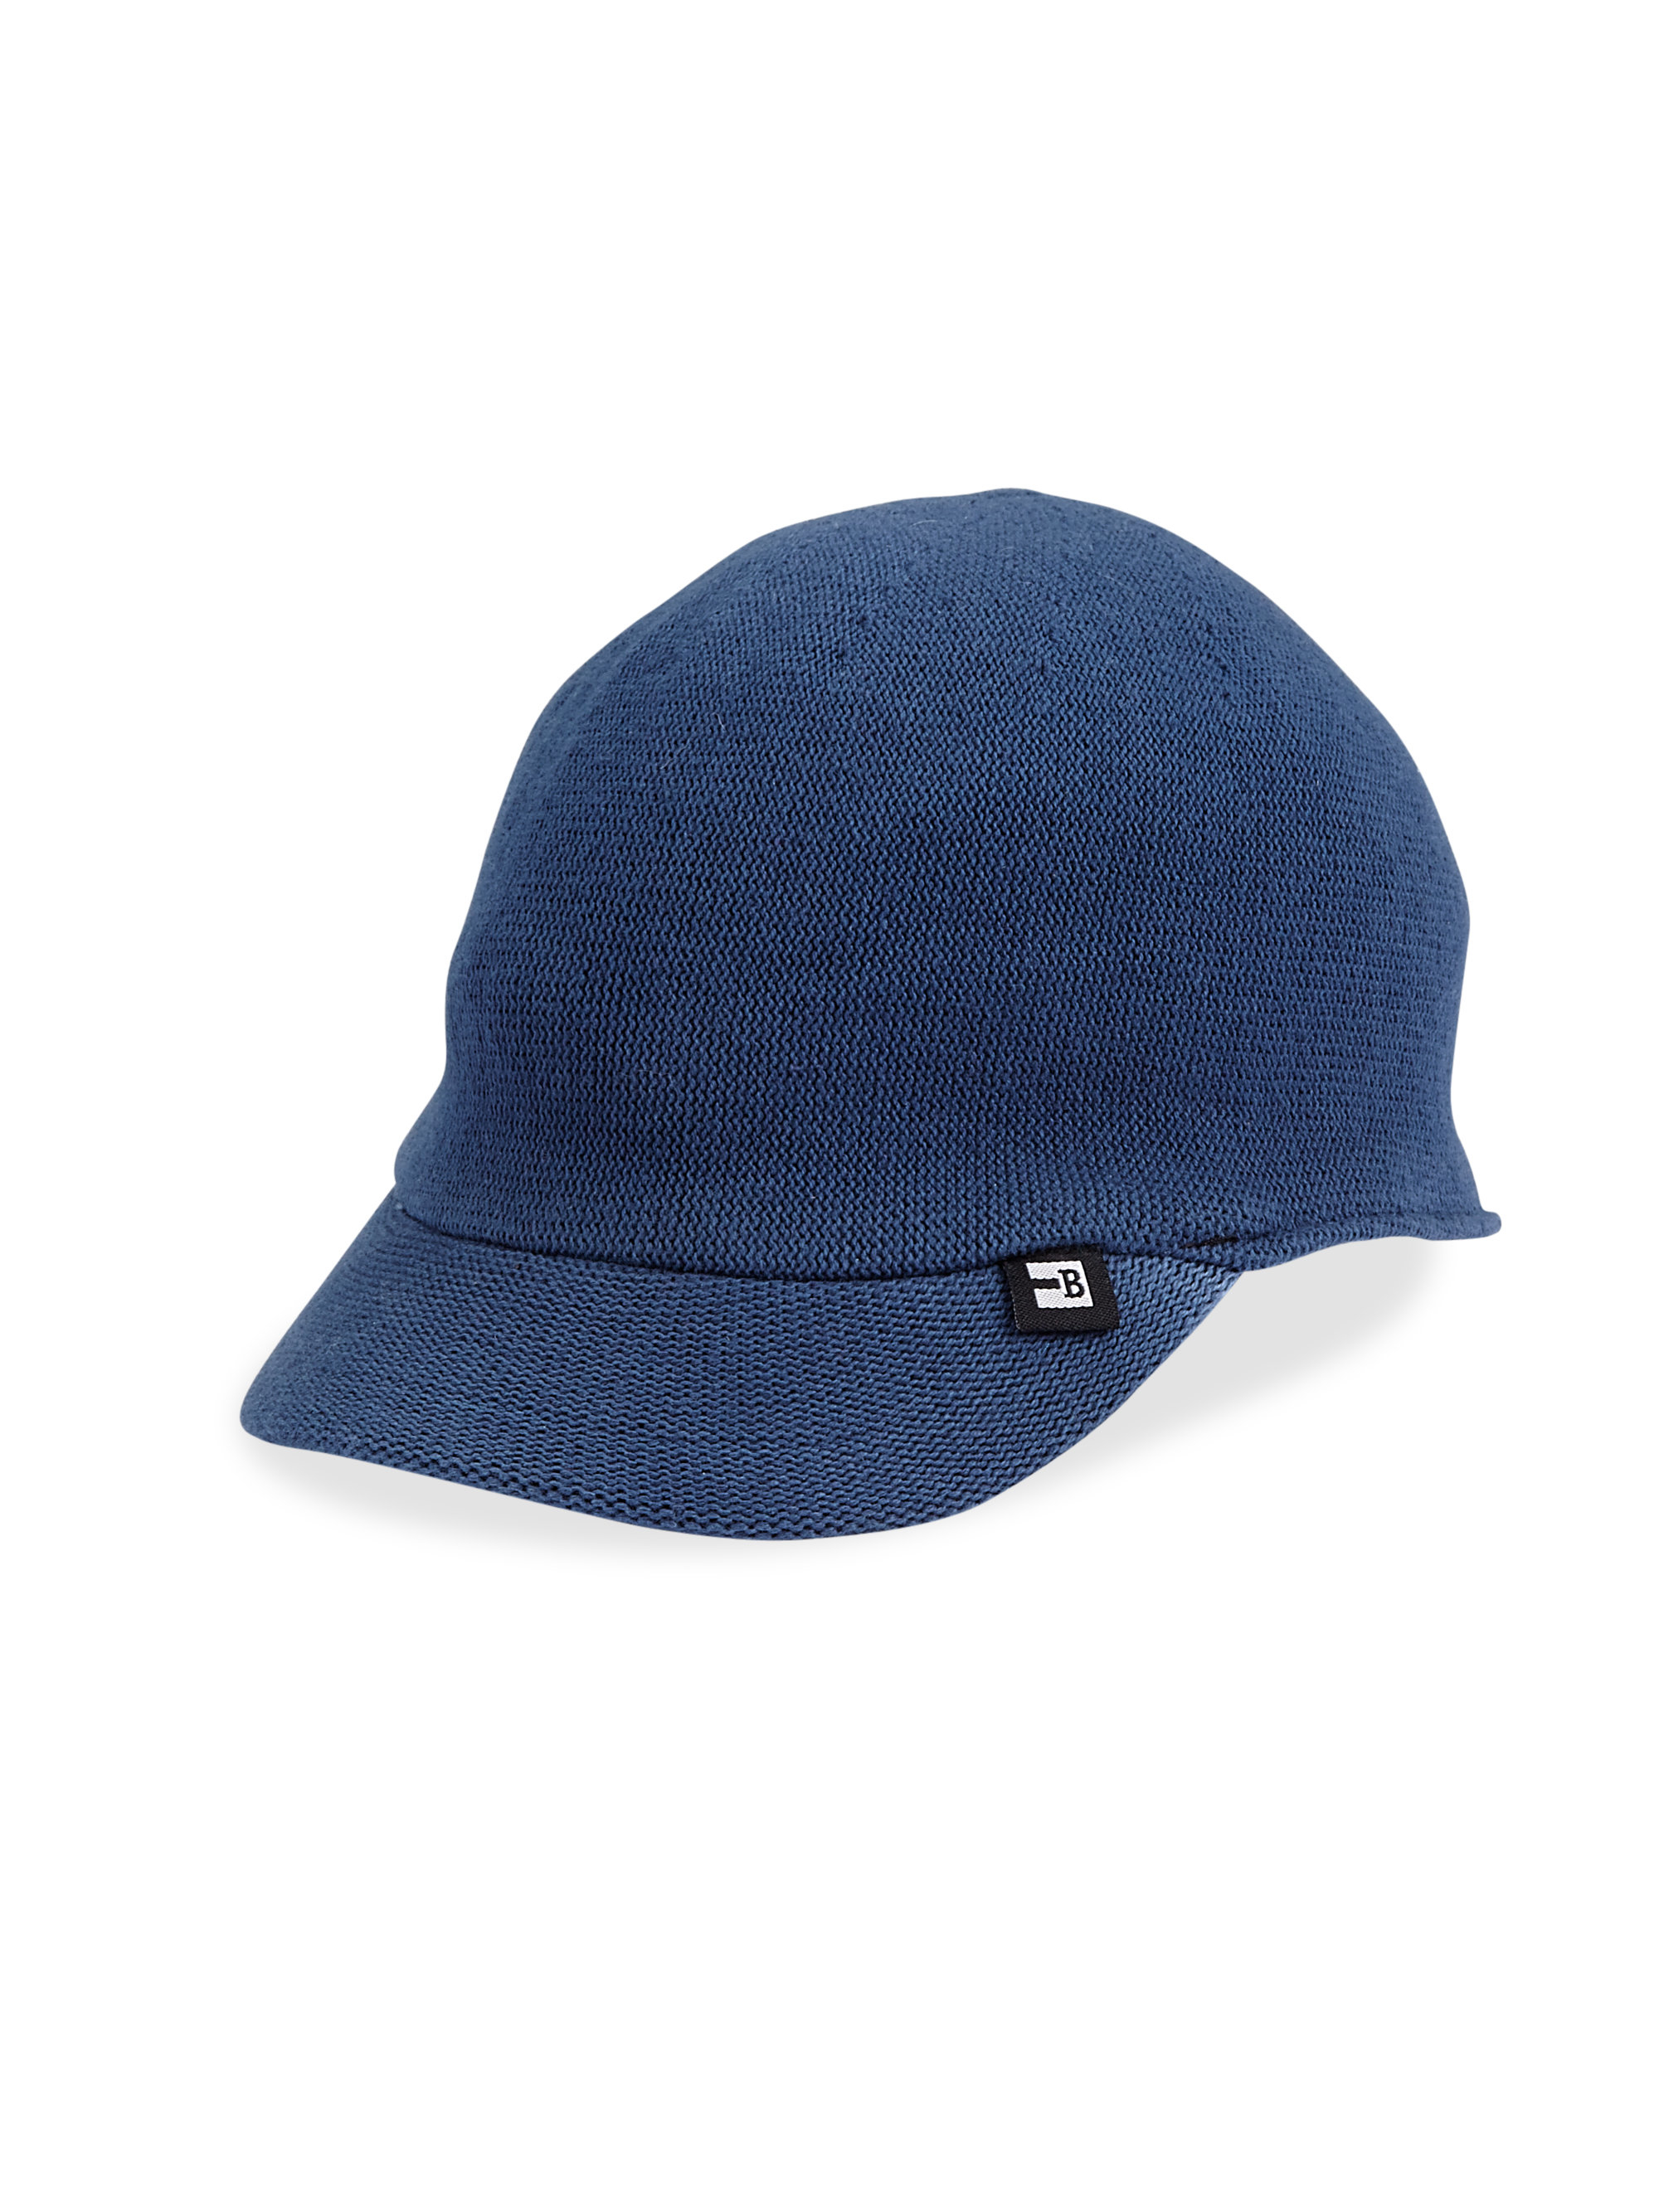 Block Headwear Club Cotton Knit Baseball Hat In Blue For